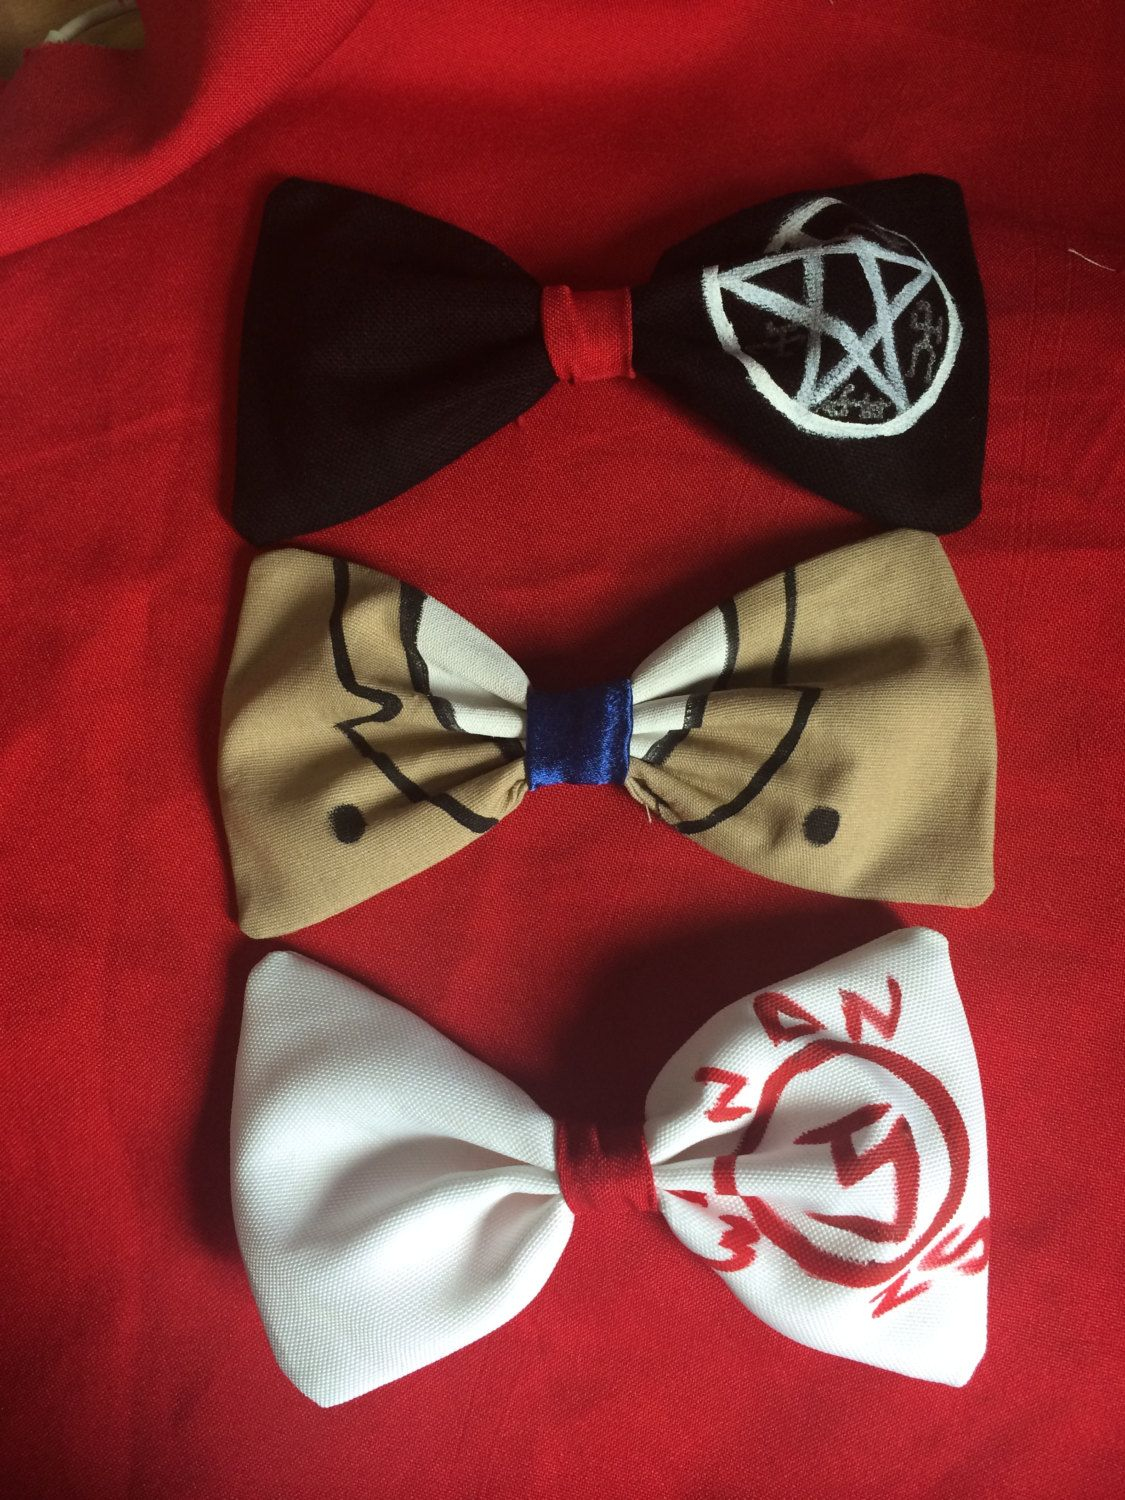 Set of 3 Supernatural Bows - Castiel outfit and Symbols by bowsbycarmensies on Etsy